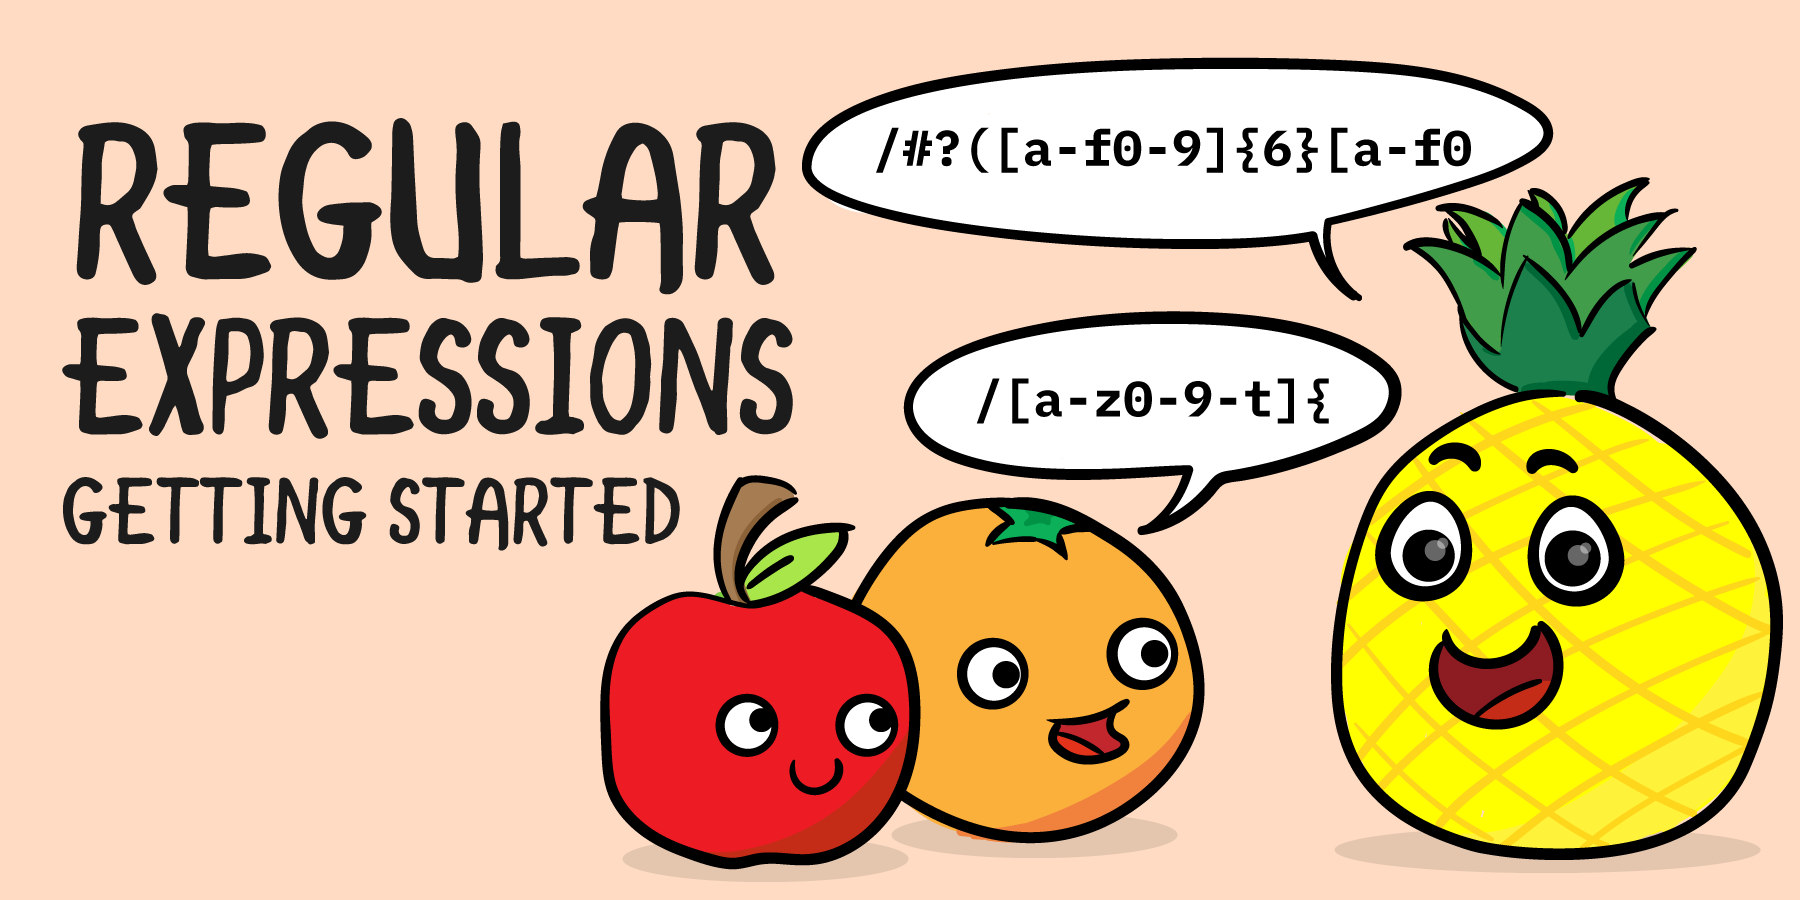 Regular Expressions Tutorial: Getting Started